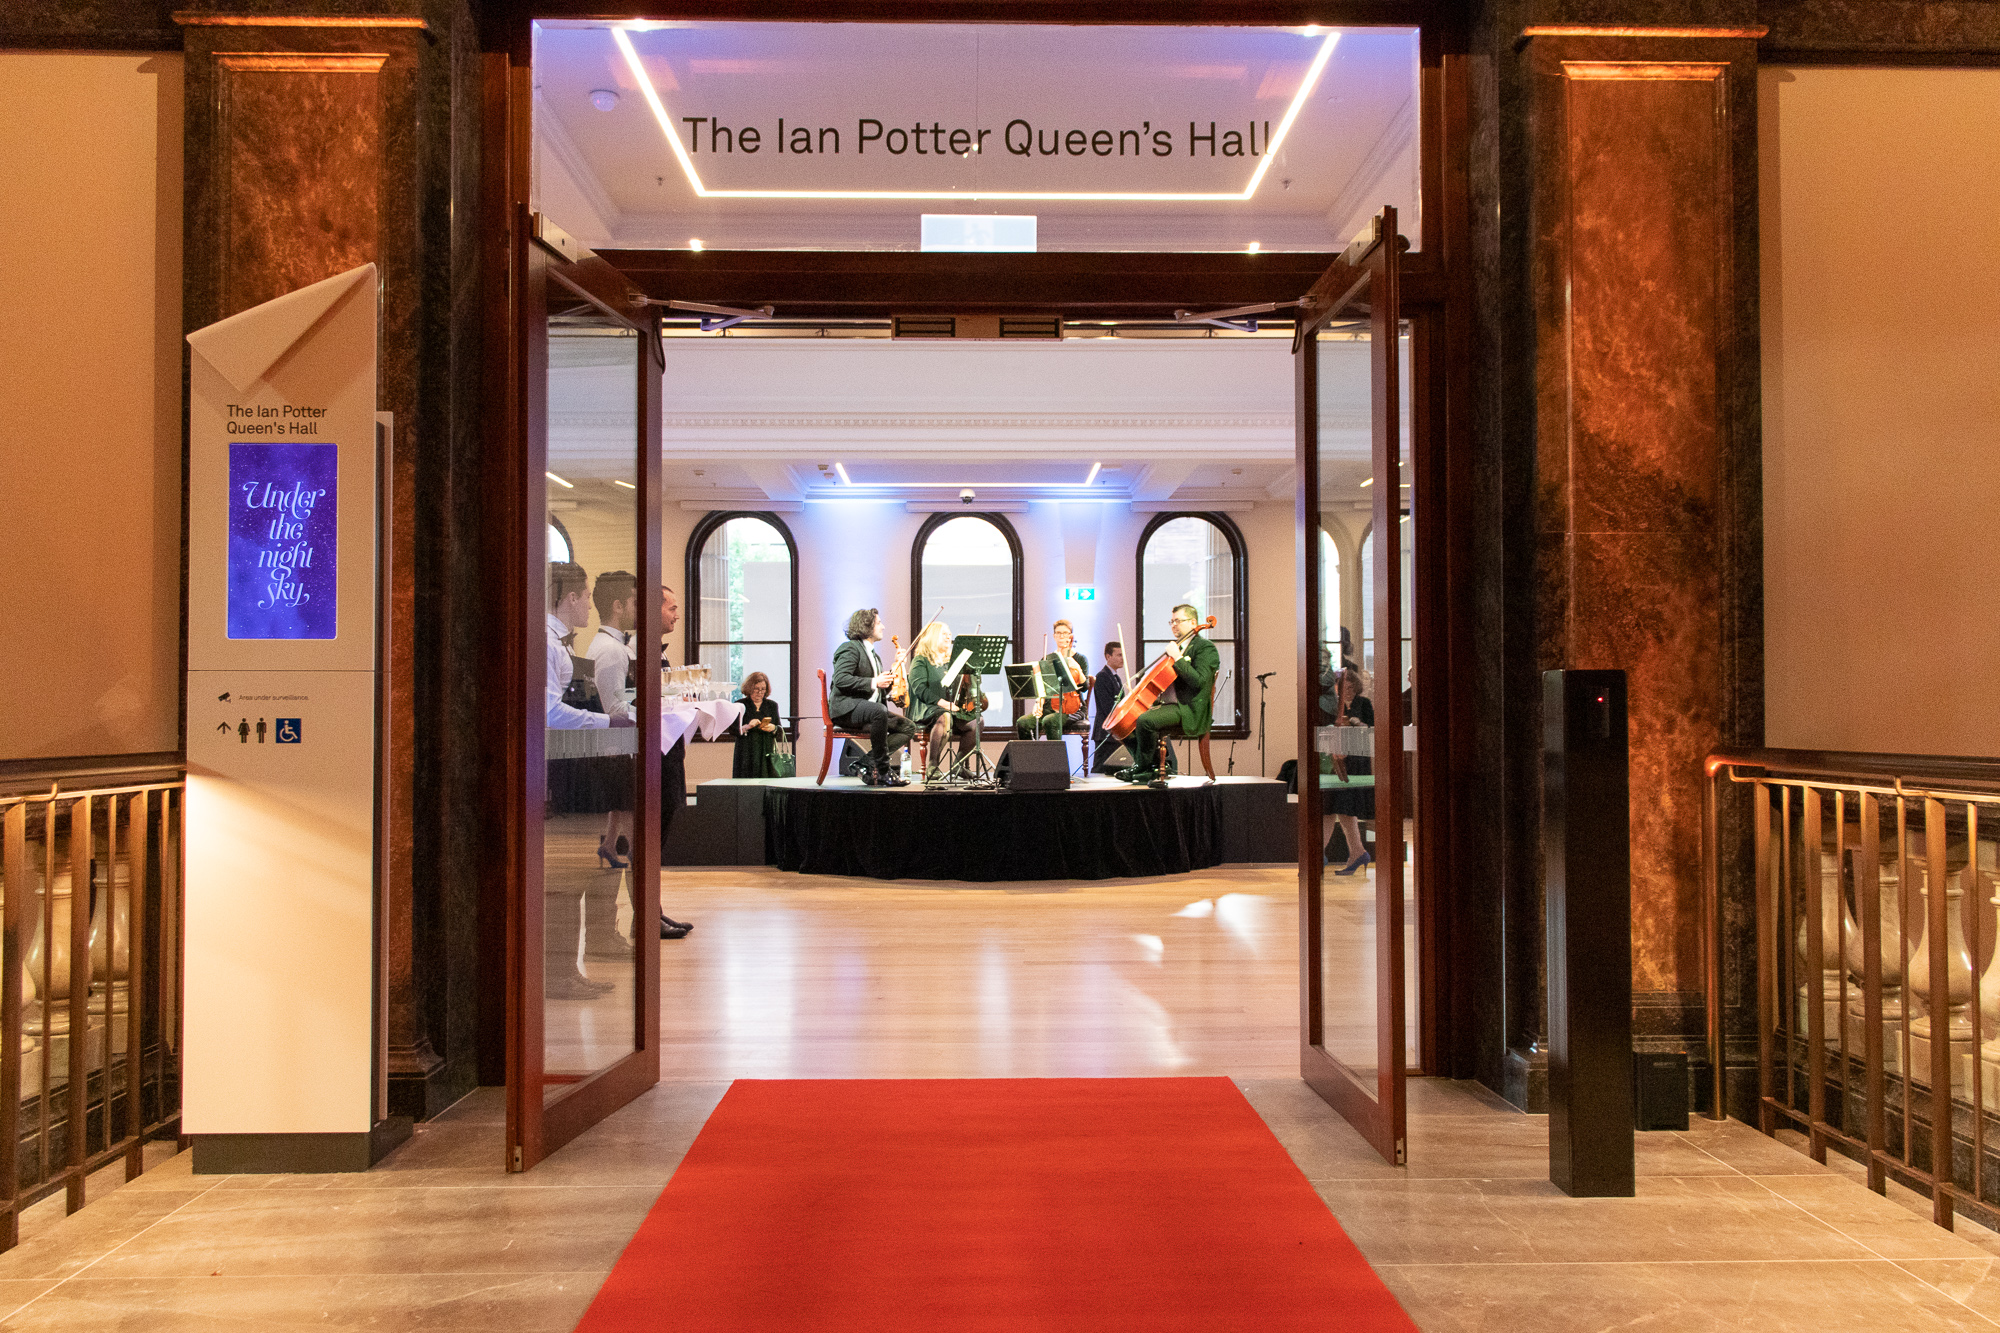 The Ian Potter Queen's Hall